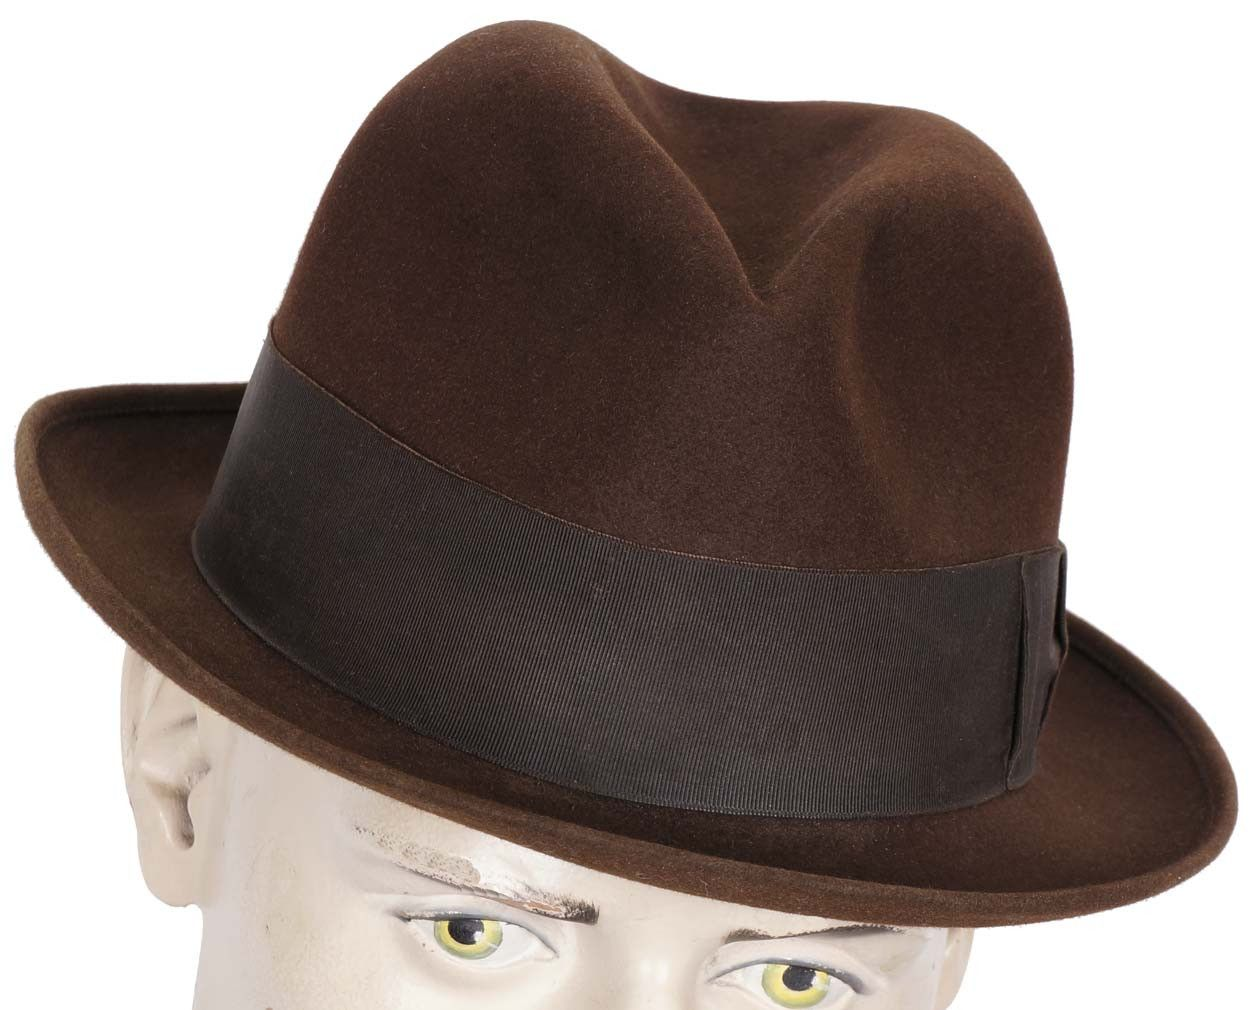 Vintage Borsalino Brown Fedora Hat Mens Size Large 7 1/4